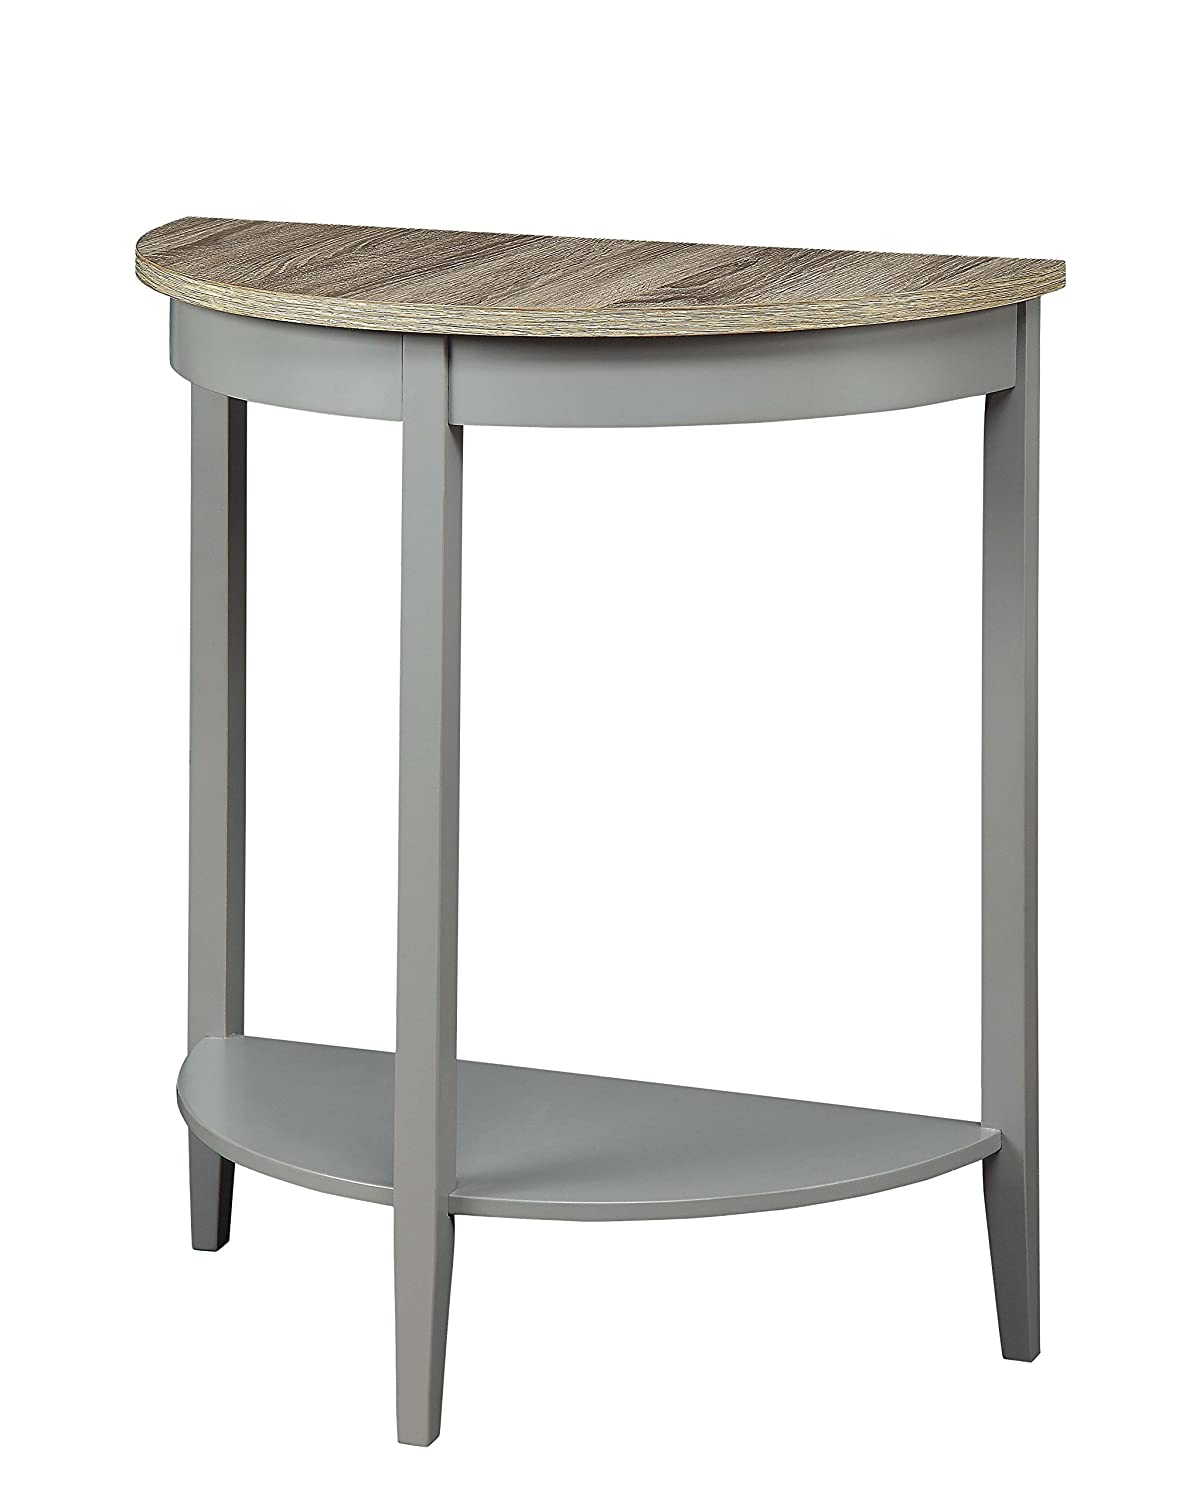 ACME Furniture Joey Gray Oak and Gray Console Table, 1 Size